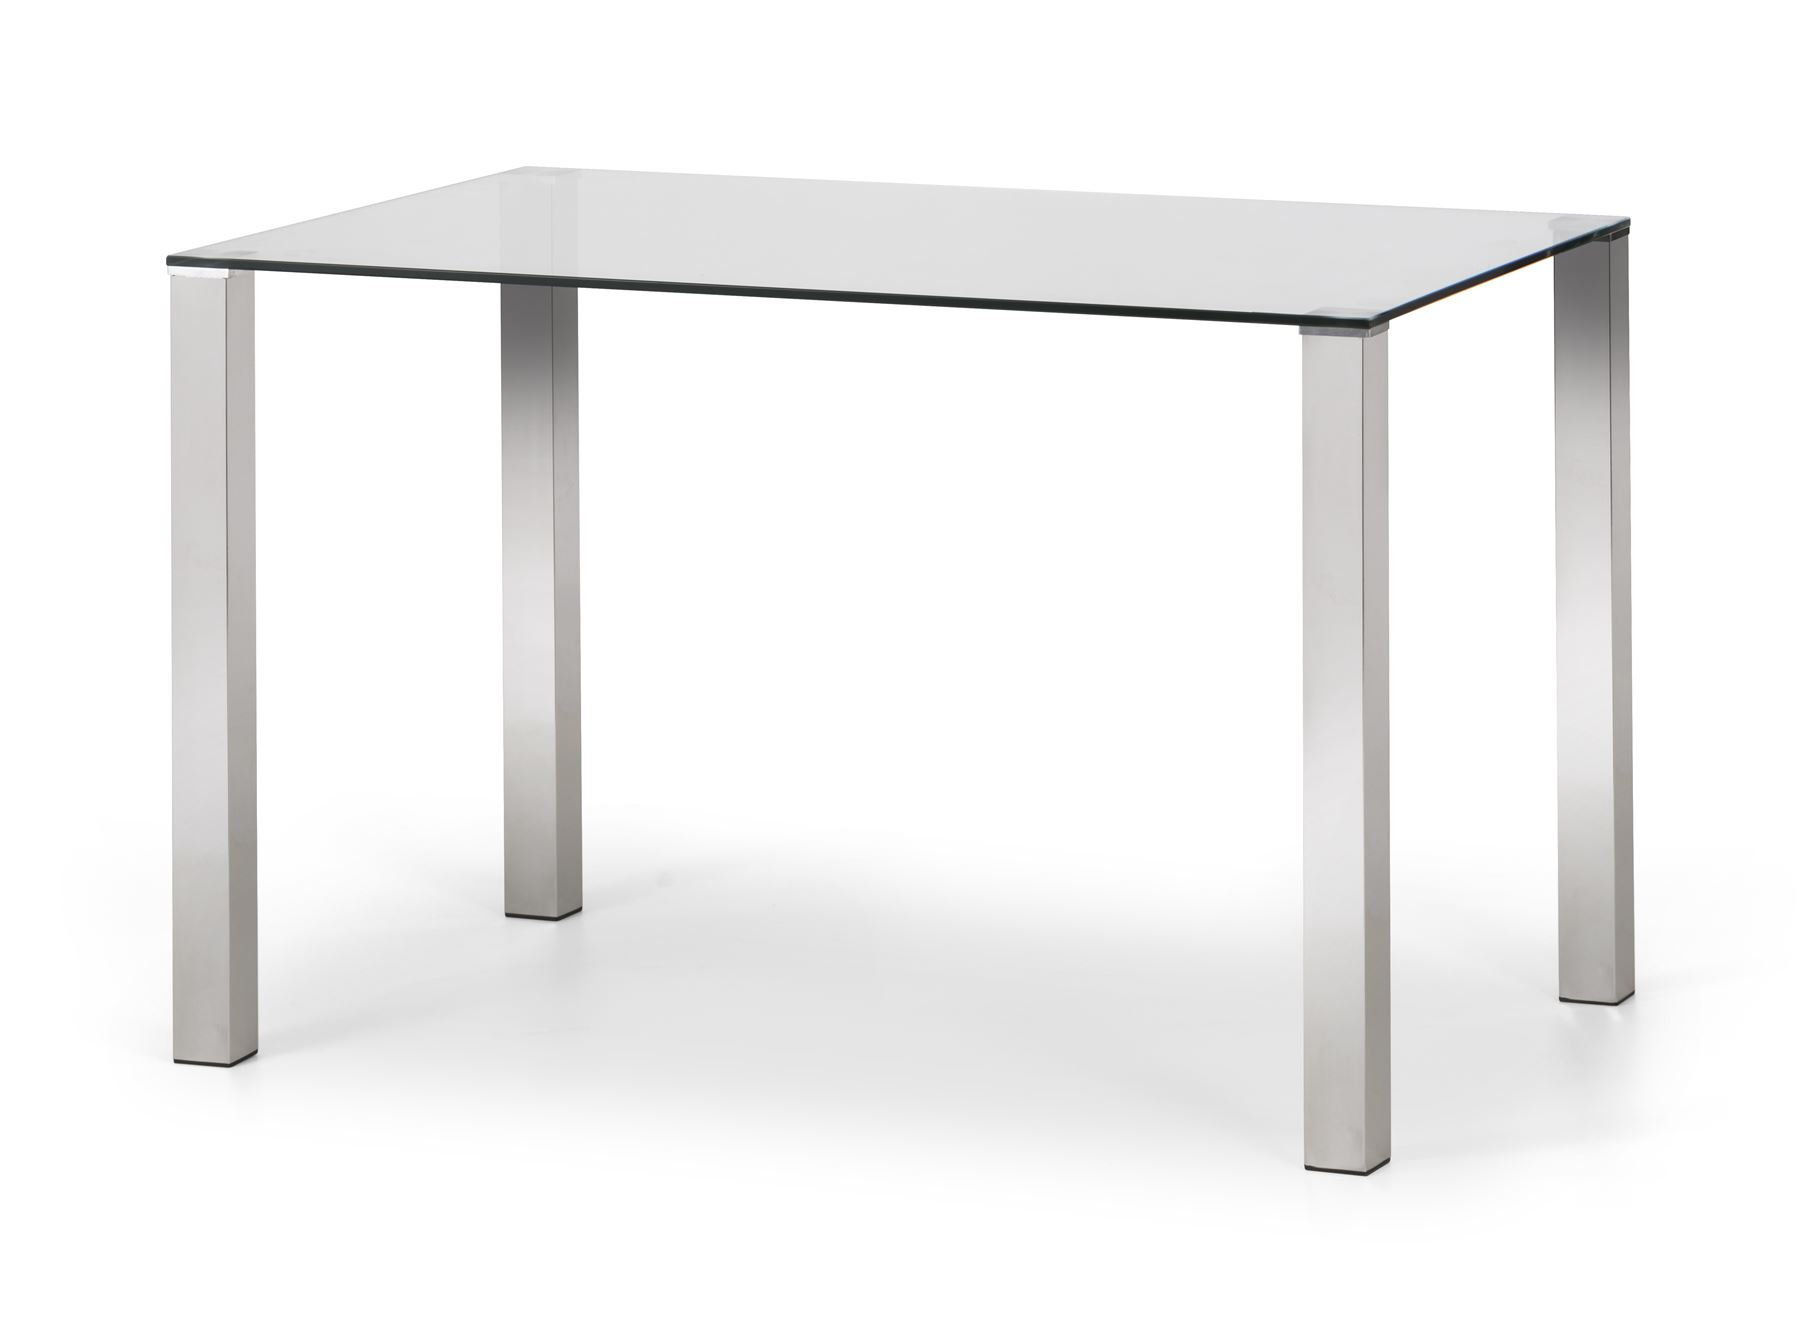 Picture of: Julian Bowen Enzo Glass Top Chrome Dining Table Rectangular 120cm Www Robinsons Furniture